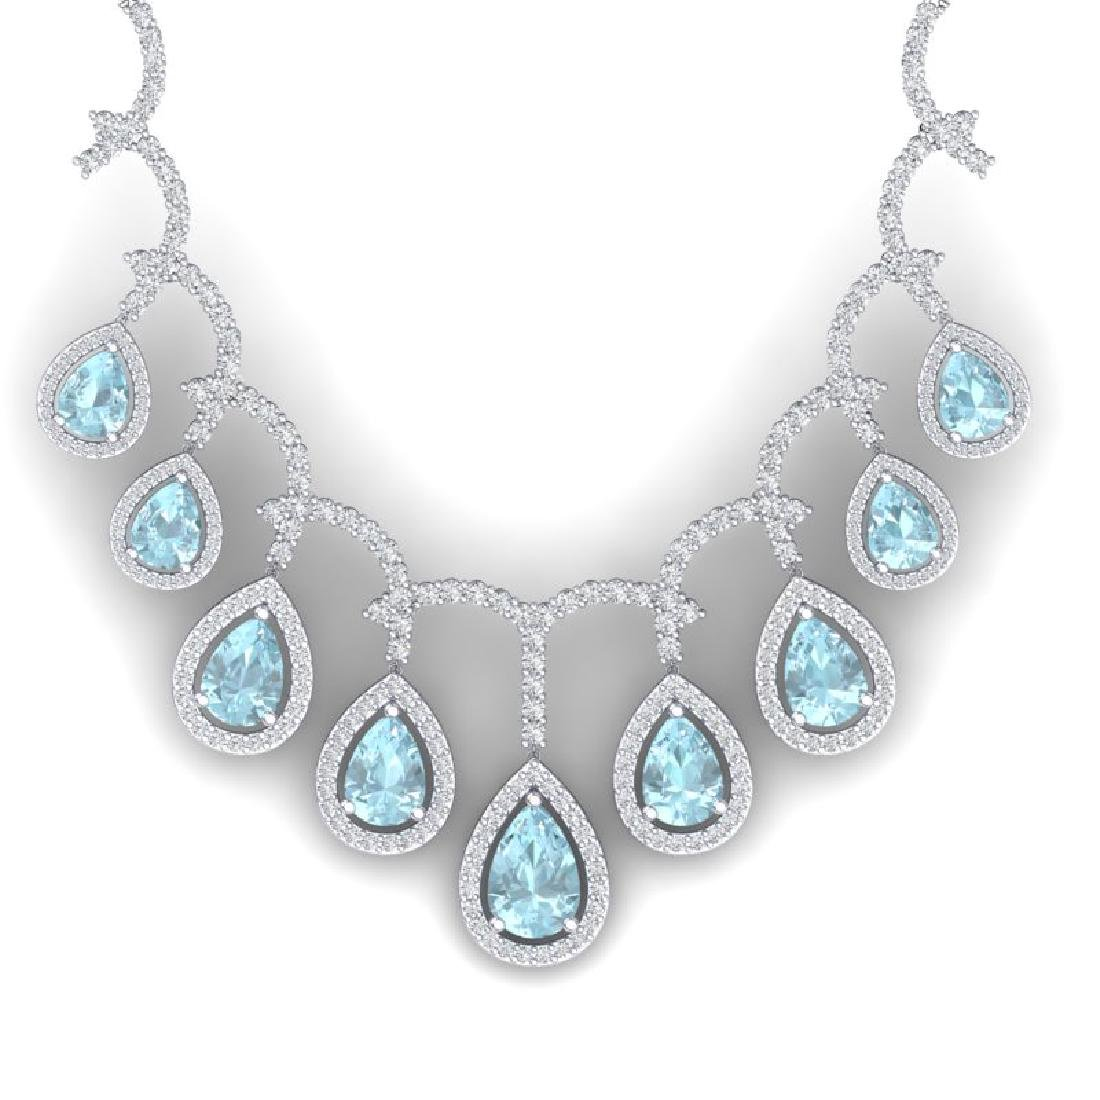 32.62 CTW Royalty Sky Topaz & VS Diamond Necklace 18K